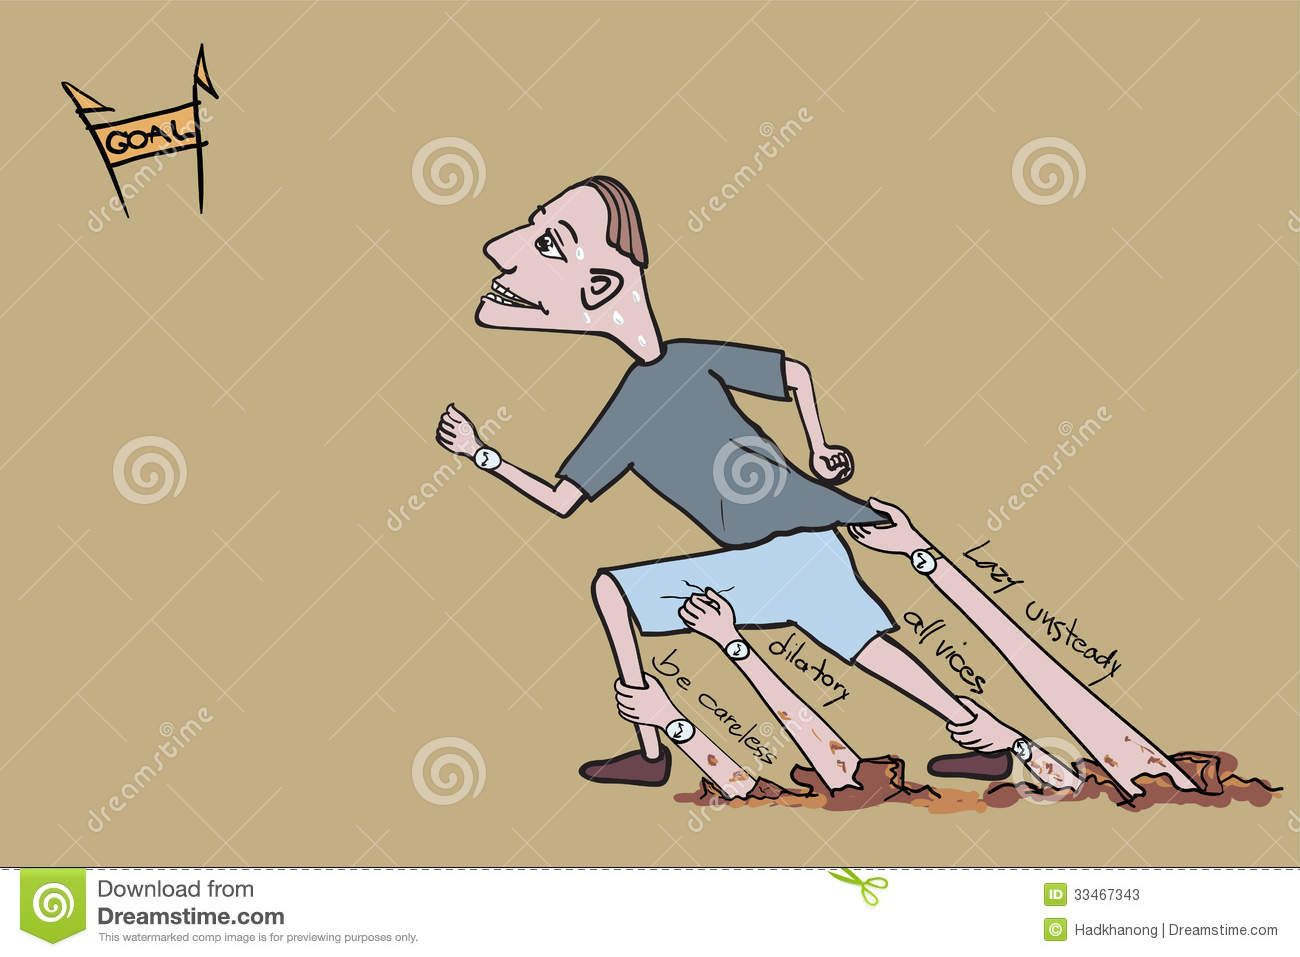 Vector Clipart - Woman jogging in slow pace, female sportsman running the  track in red top and blue short in racing competition illustration. Vector  Illustration gg94653859 - GoGraph